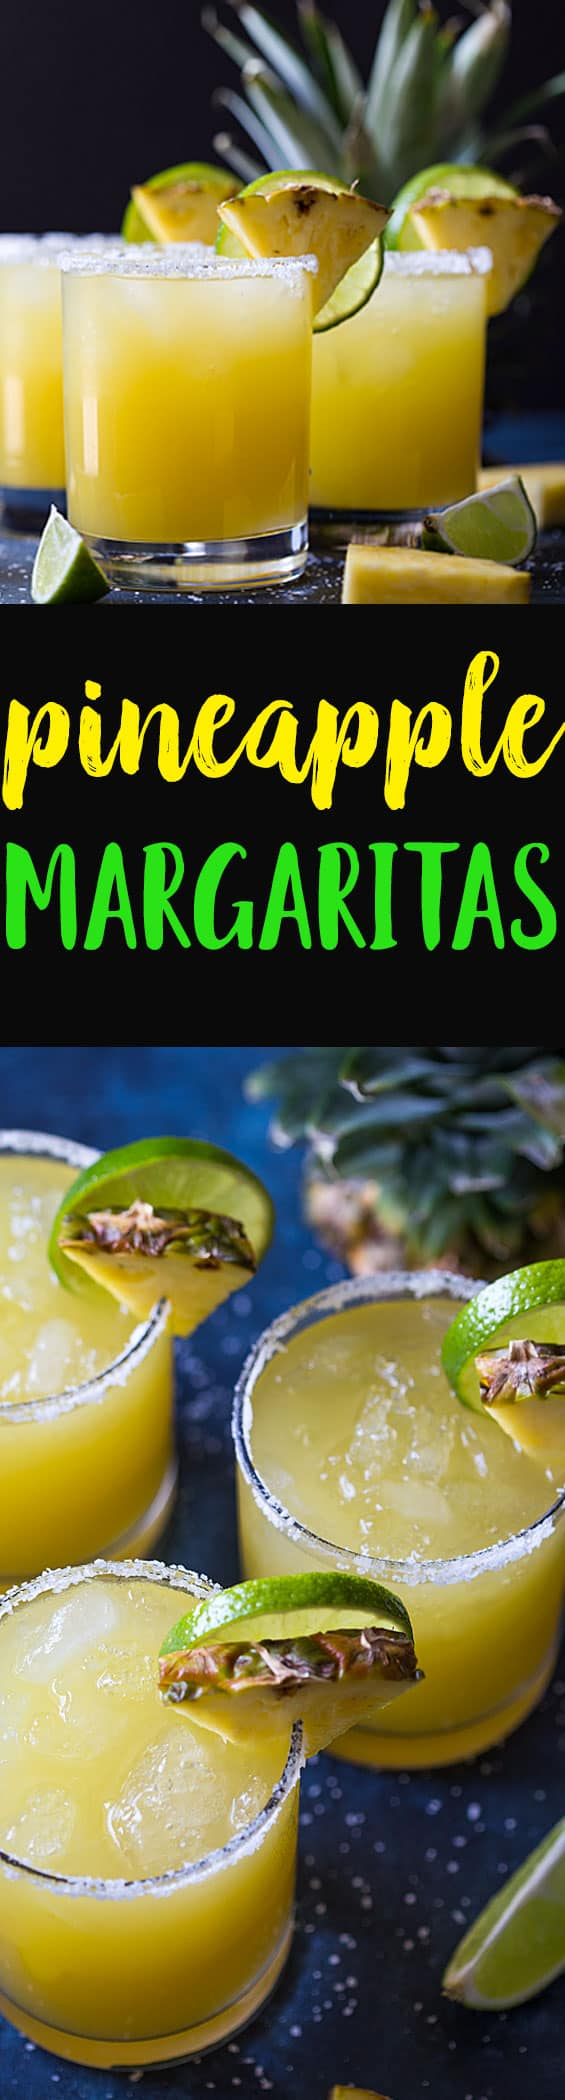 Two images of margaritas.  Text in center says Pineapple margaritas.